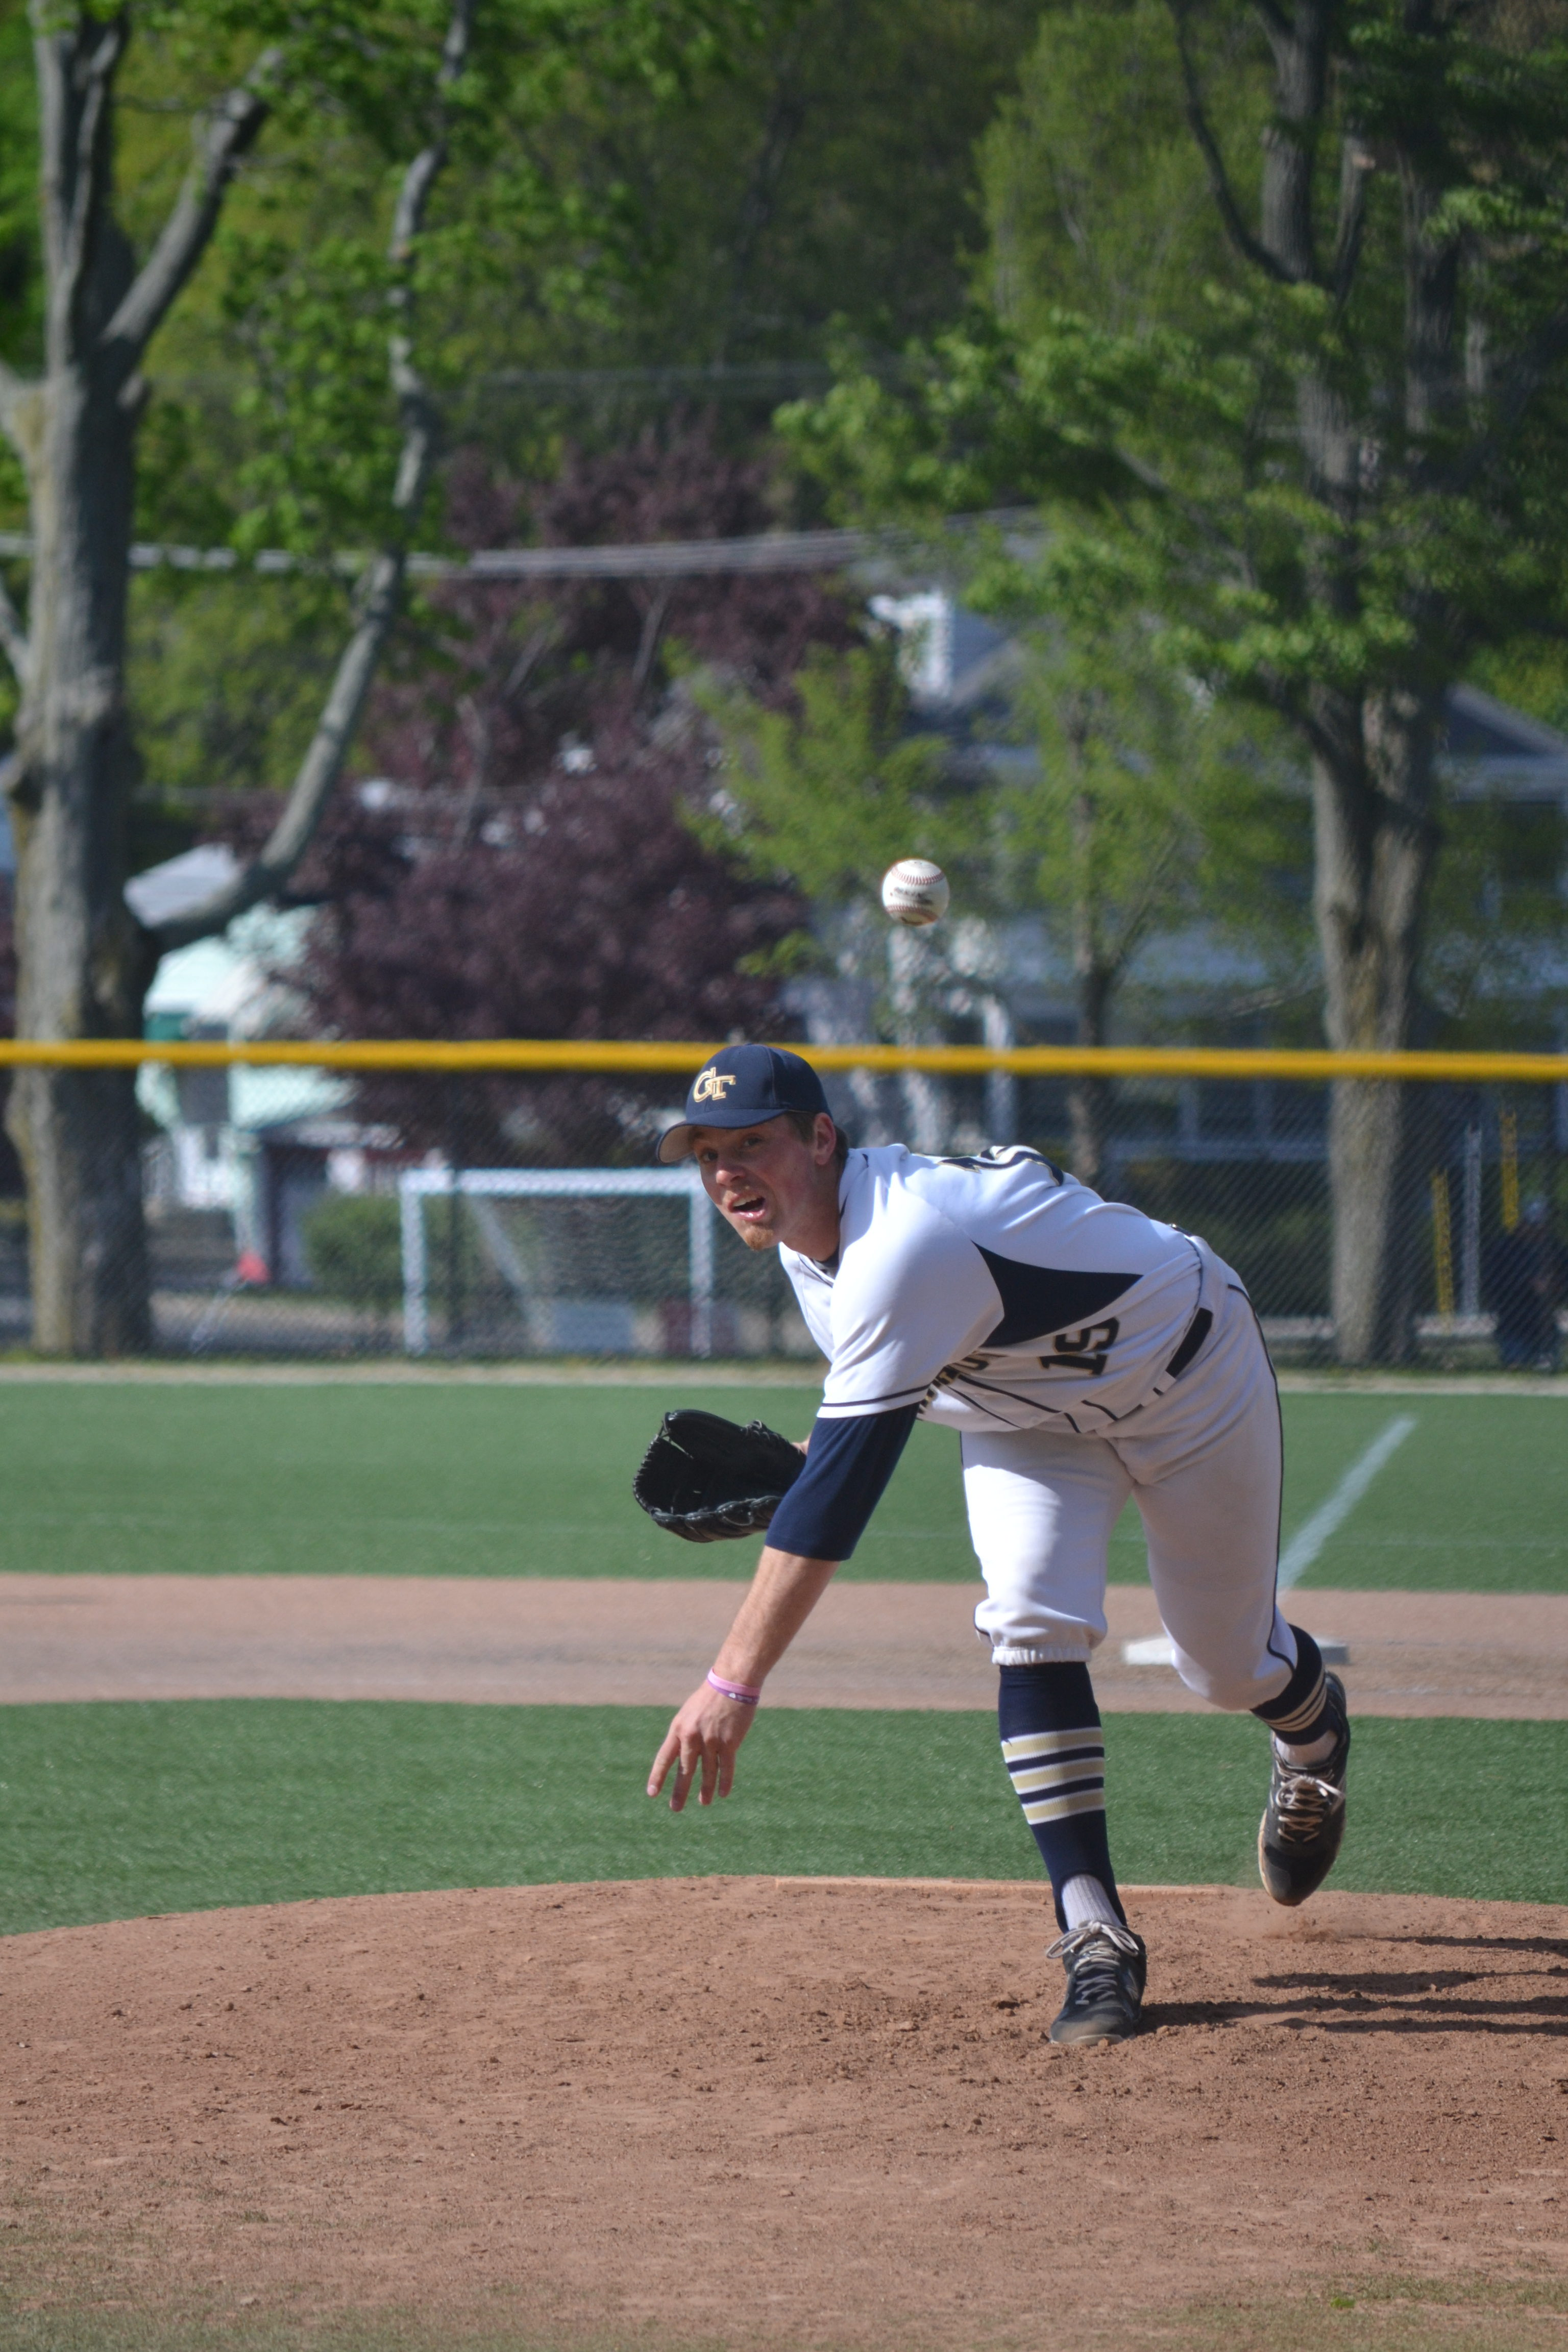 Senior captain Ronald Luke pitching. Photo taken by Jesaias Benitez